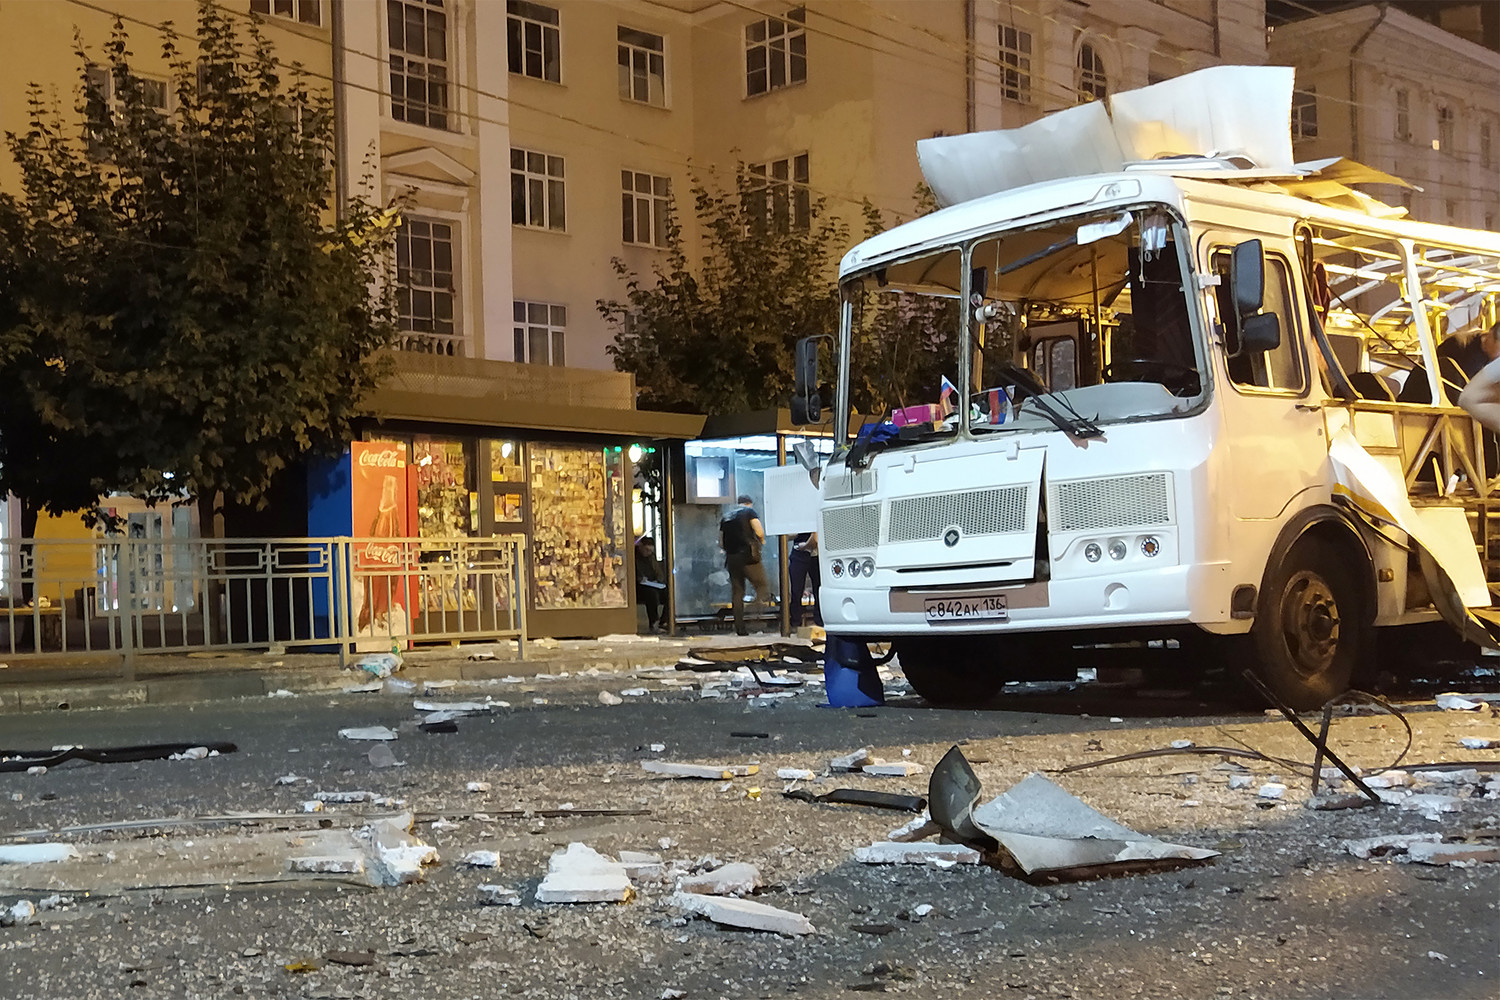 Bus Explosion Leaves 2 Dead, 19 Injured In Russia's Voronezh